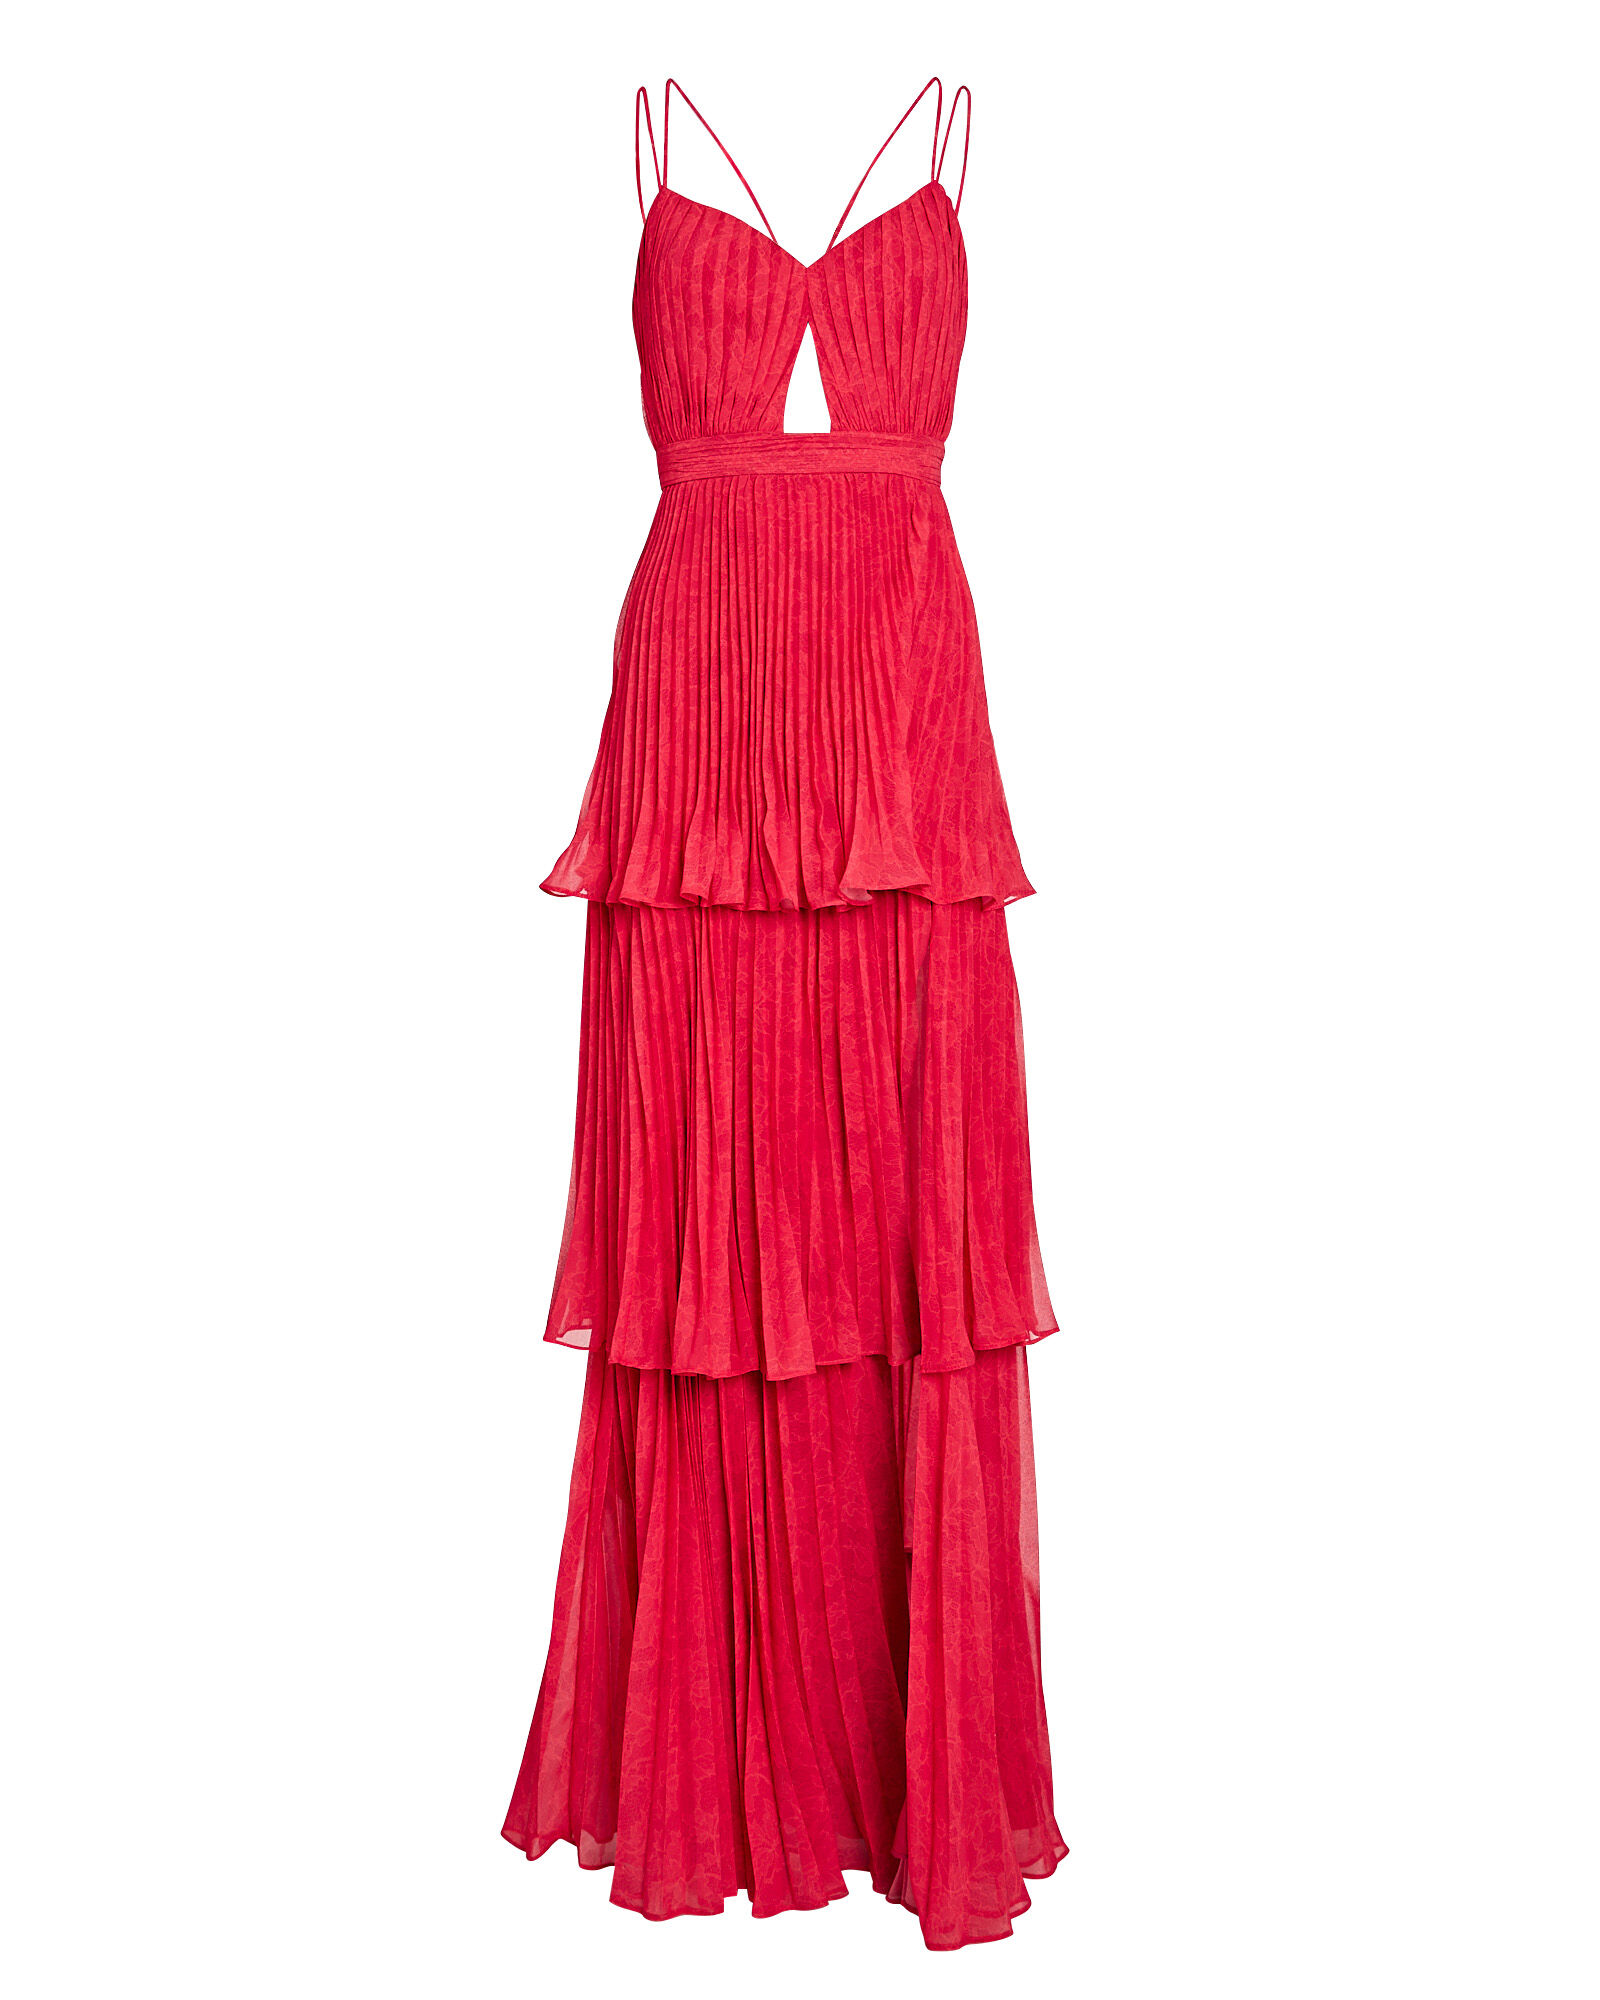 Dominique Pleated Cut-Out Dress, ROSE, hi-res